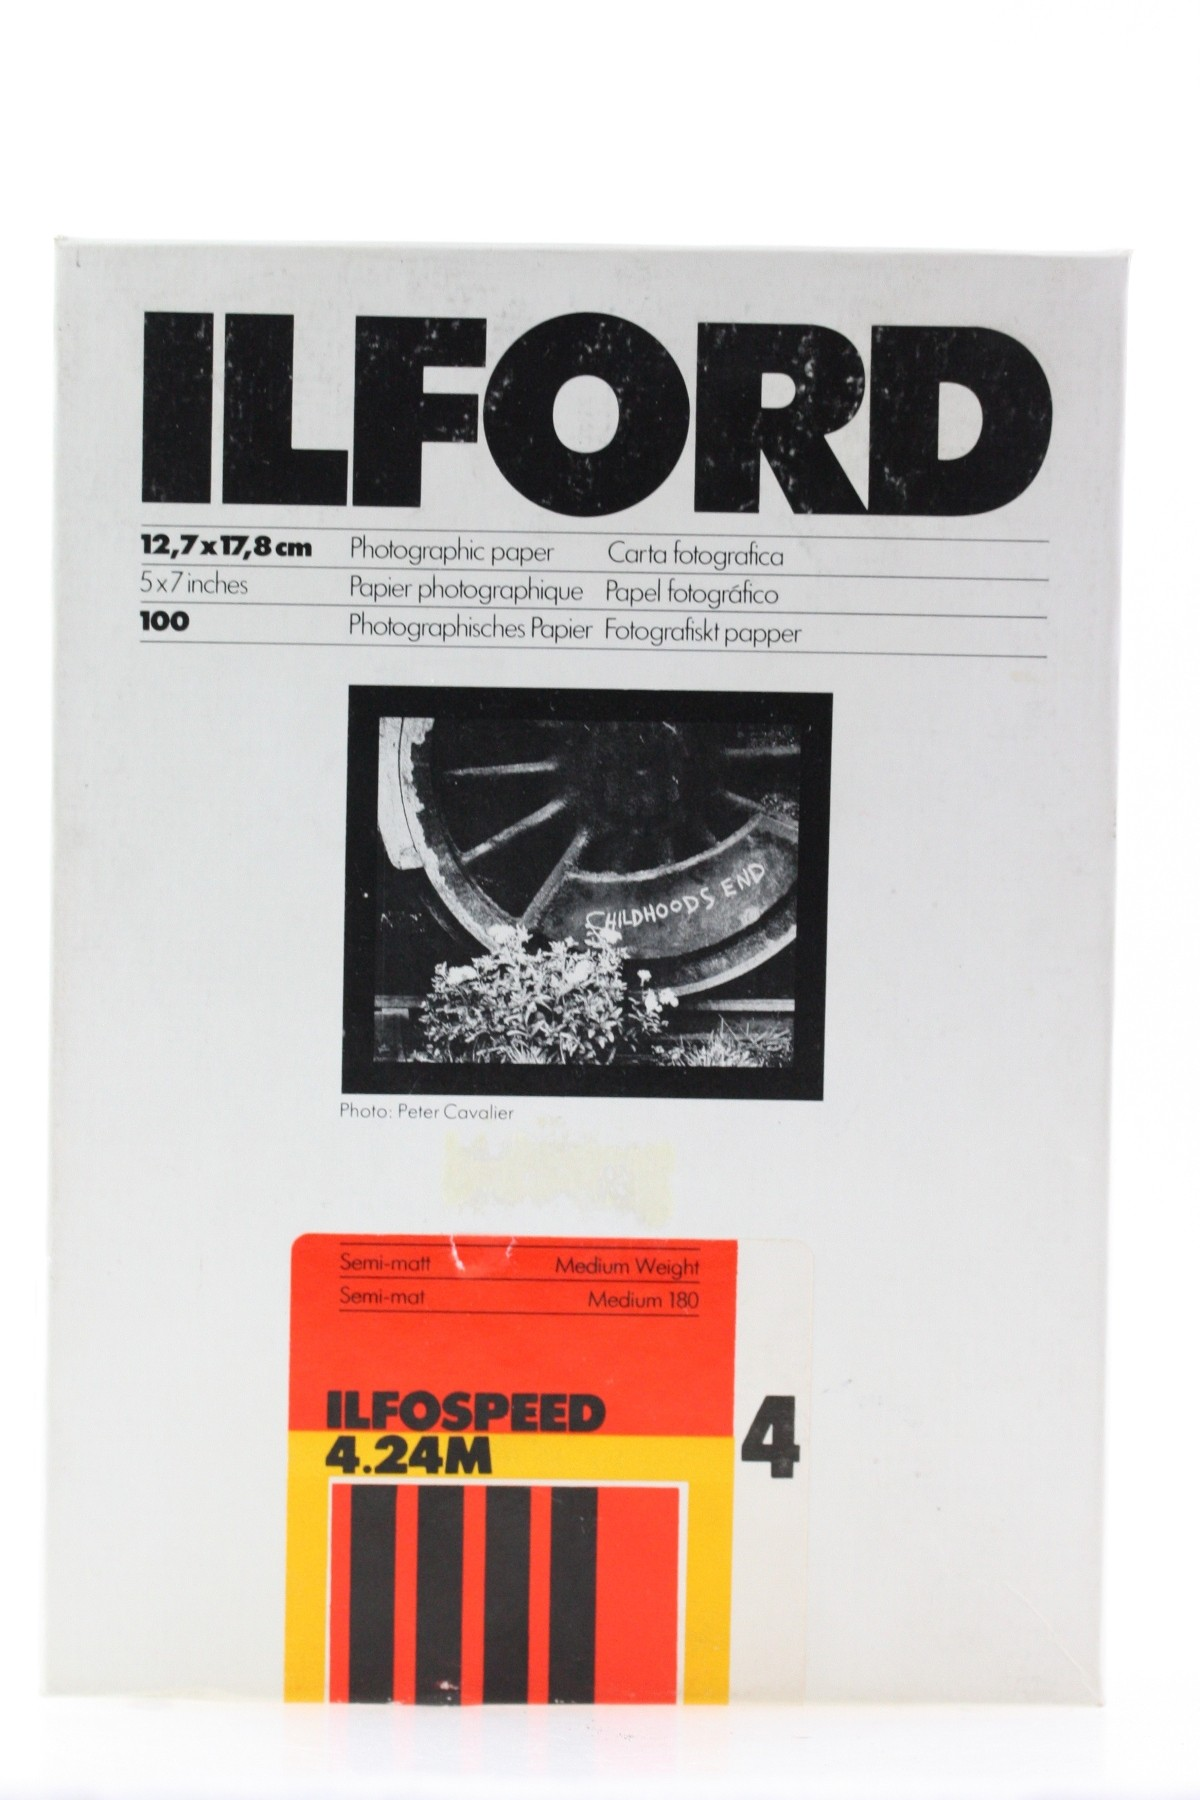 Ilford Ilfospeed 4 Semi-Matt 4.24M 5x7\